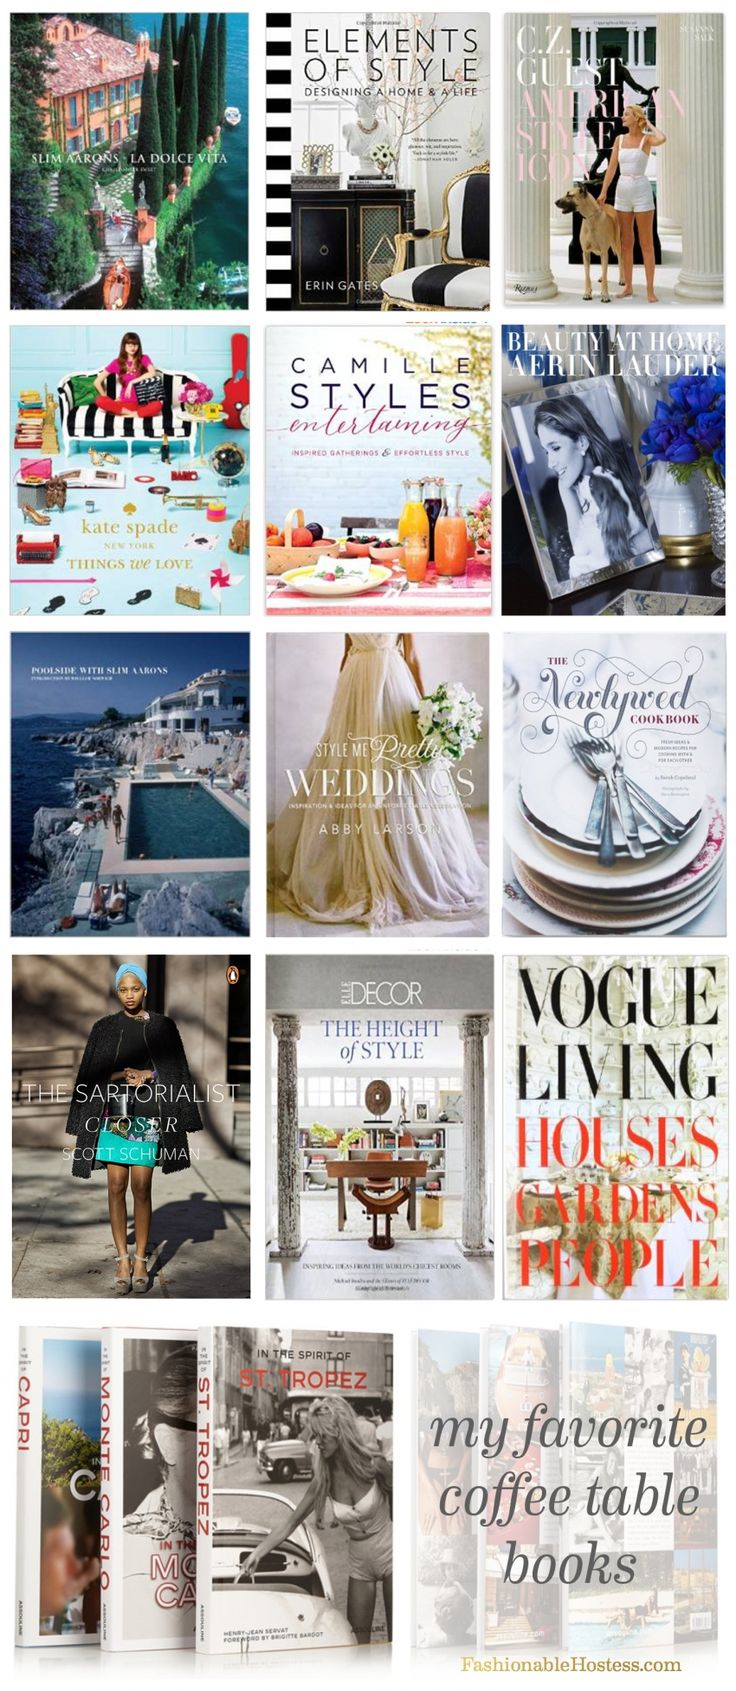 The Most Fashionable Coffee Table Books   Fashionable Hostess | Fashionable  Hostess